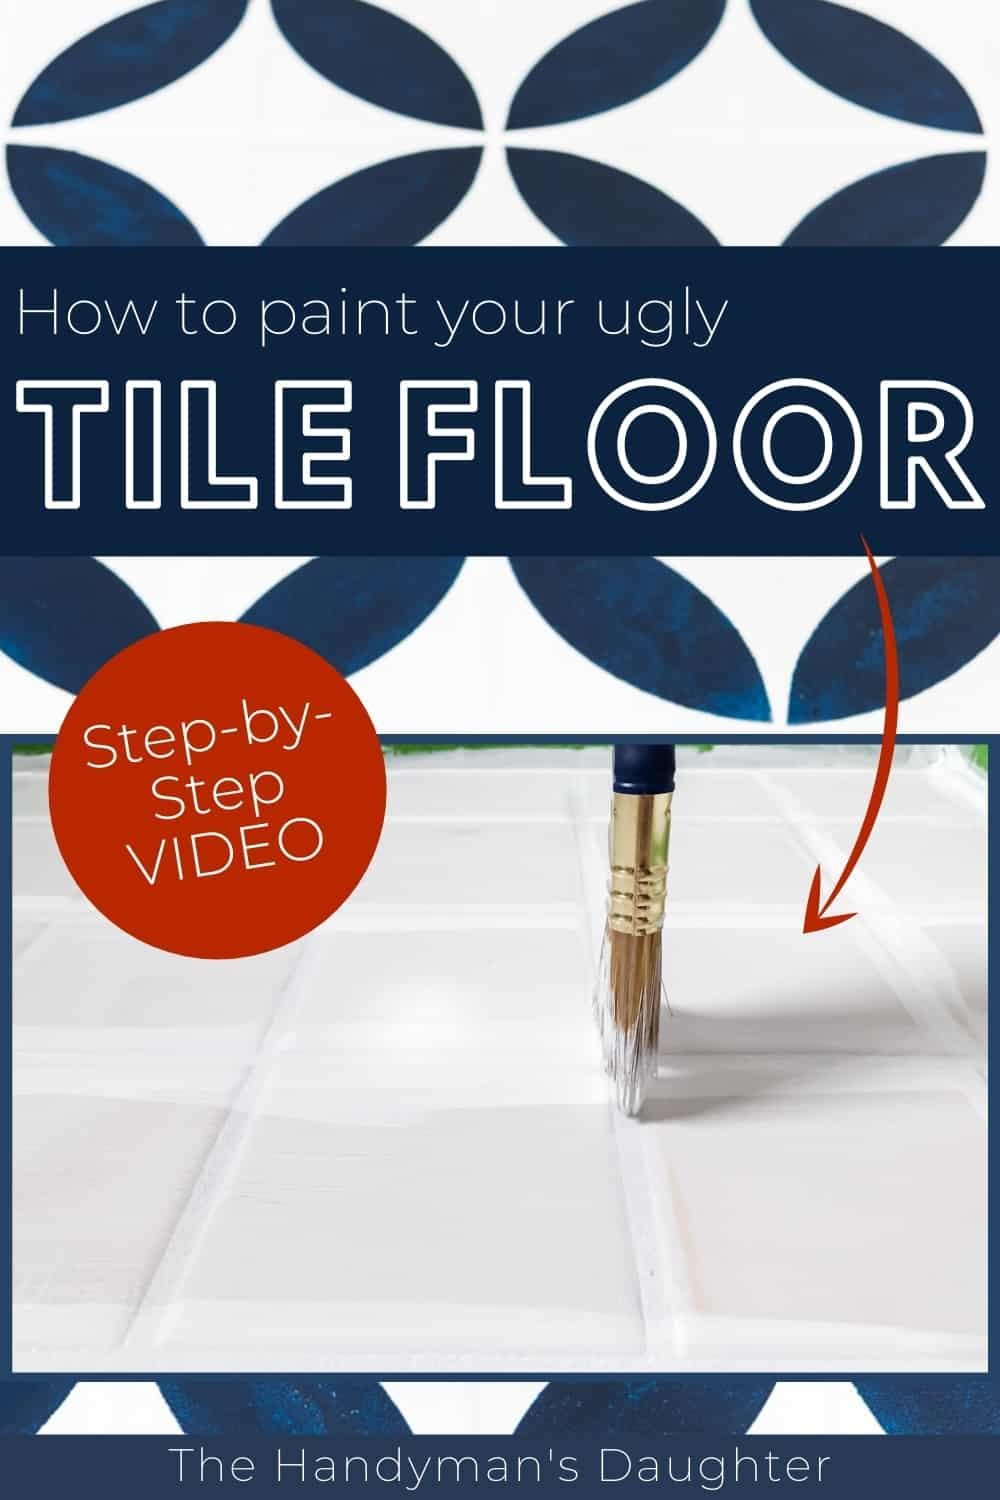 how to paint your ugly tile floor with step-by-step video